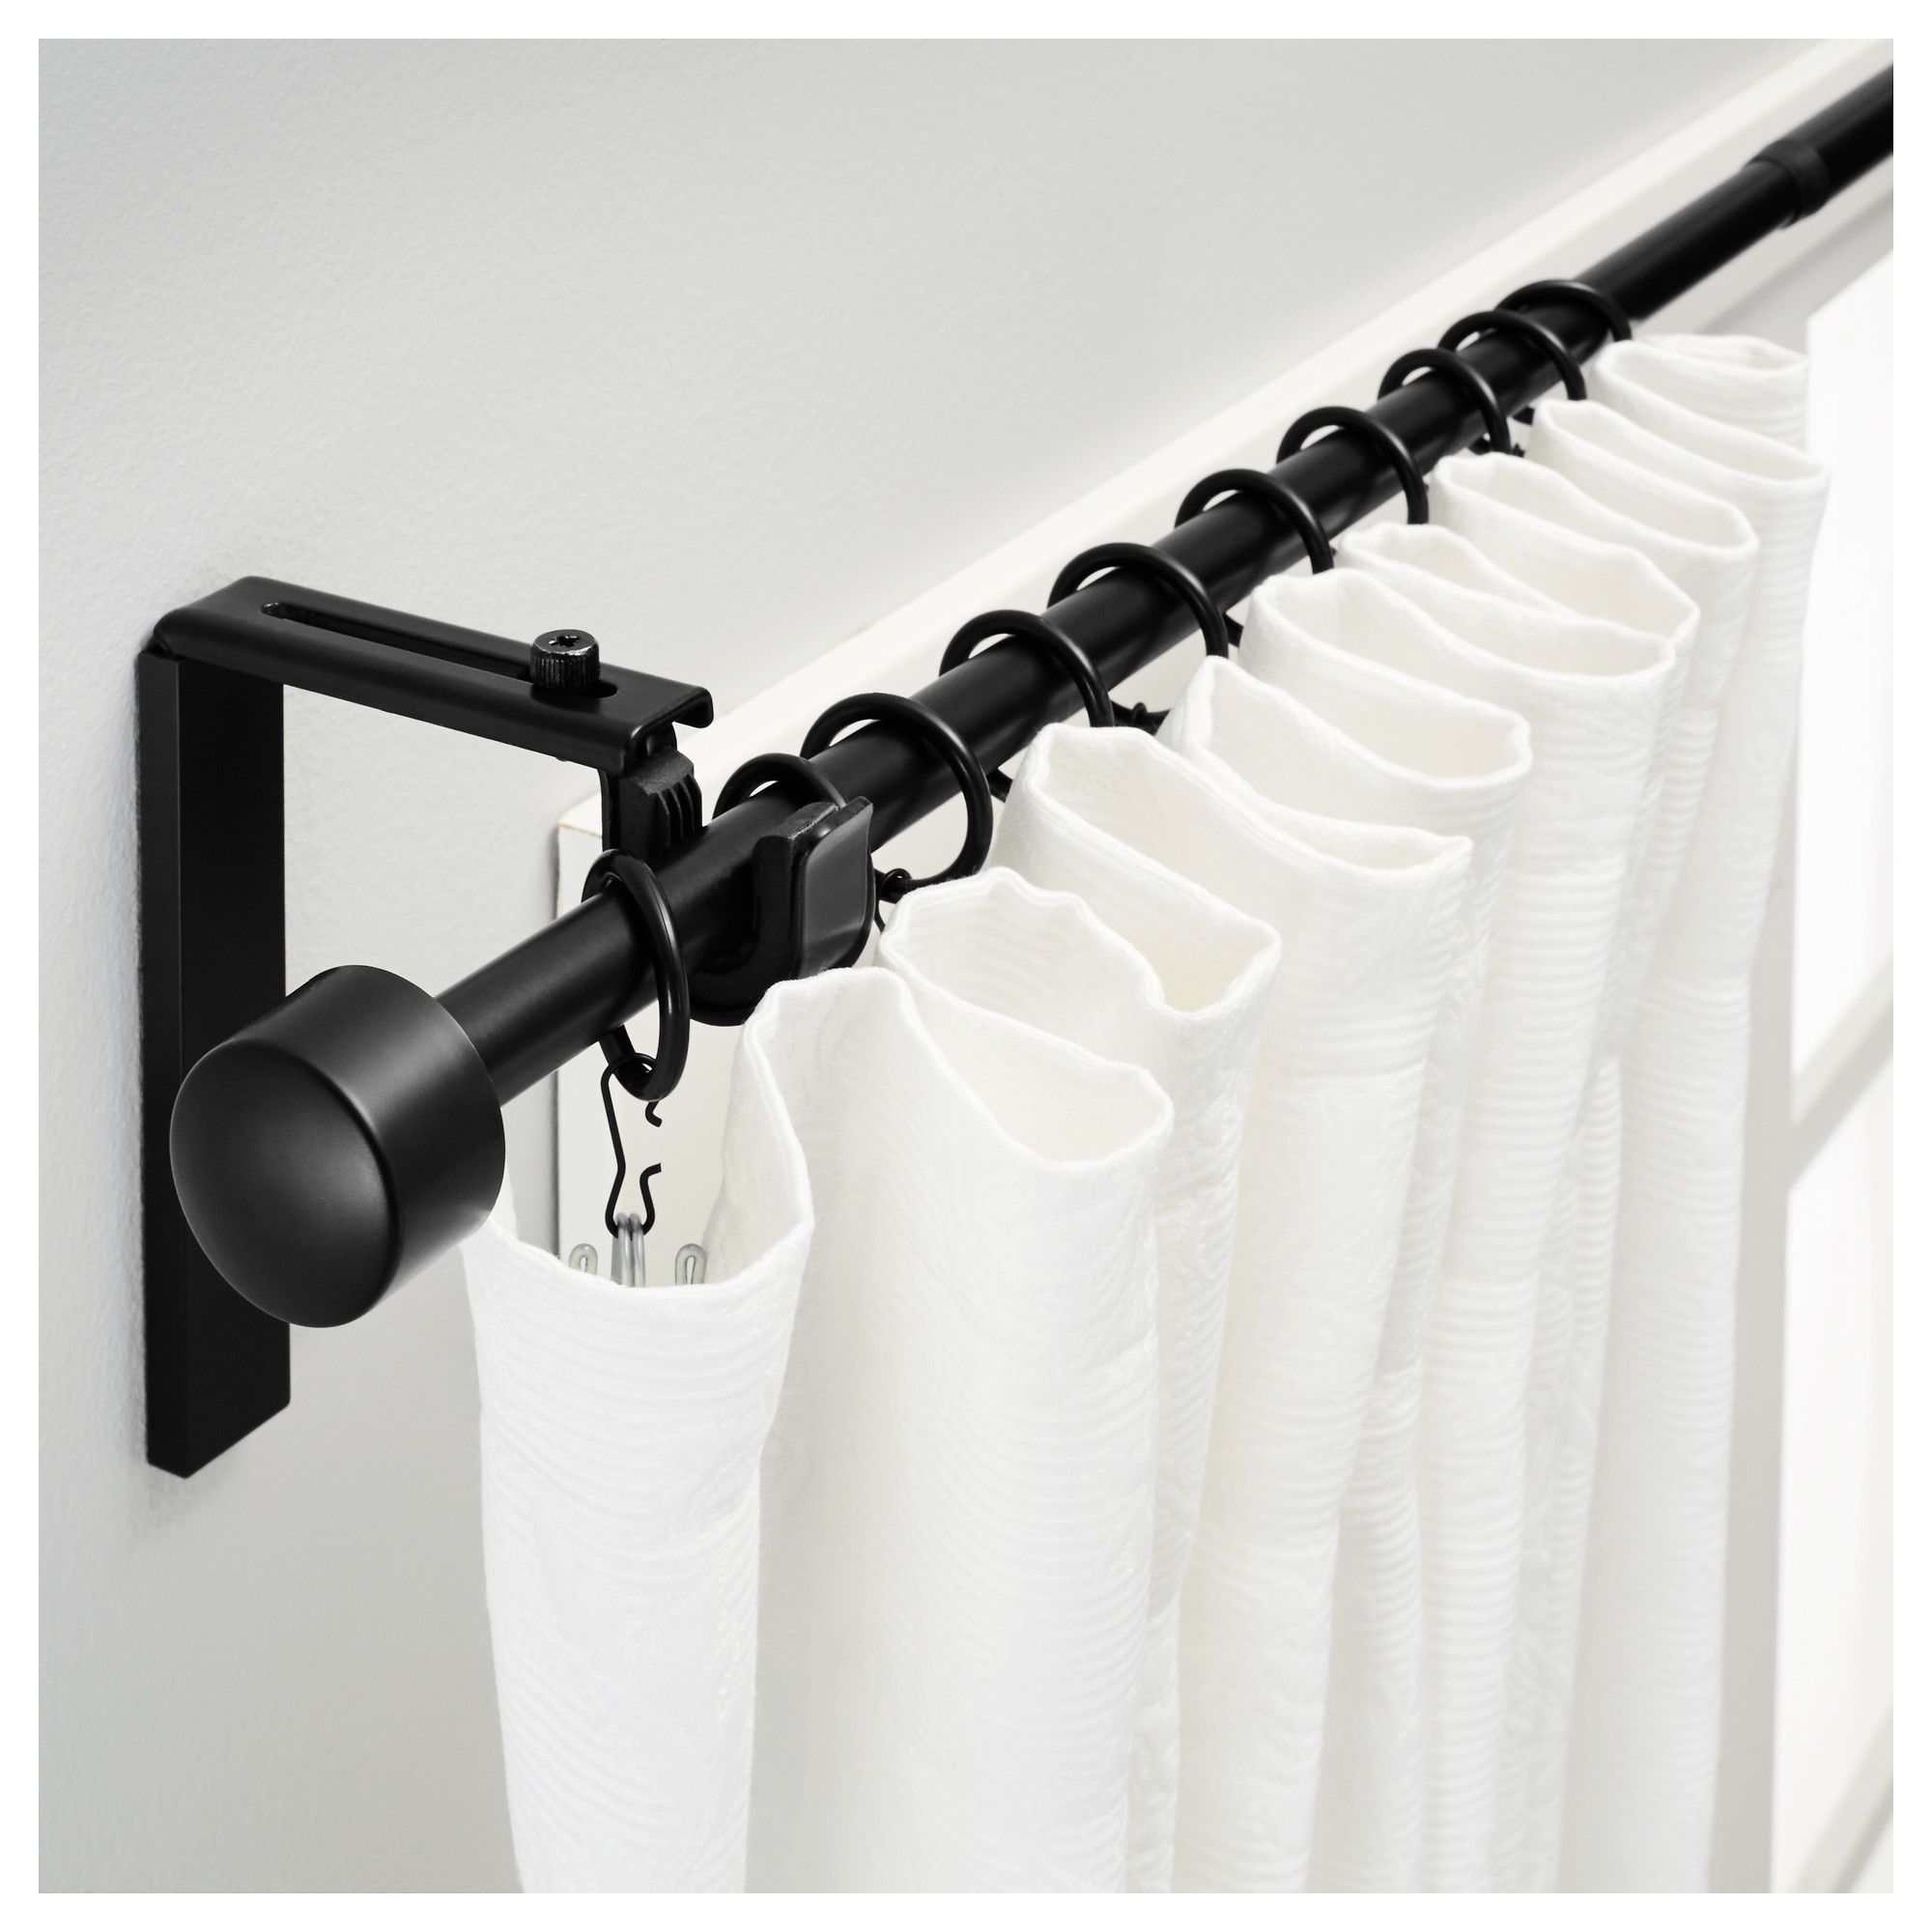 Racka Curtain Rod Combination Black Ikea Curtain Rods Black Shower Curtains Black Curtain Rods